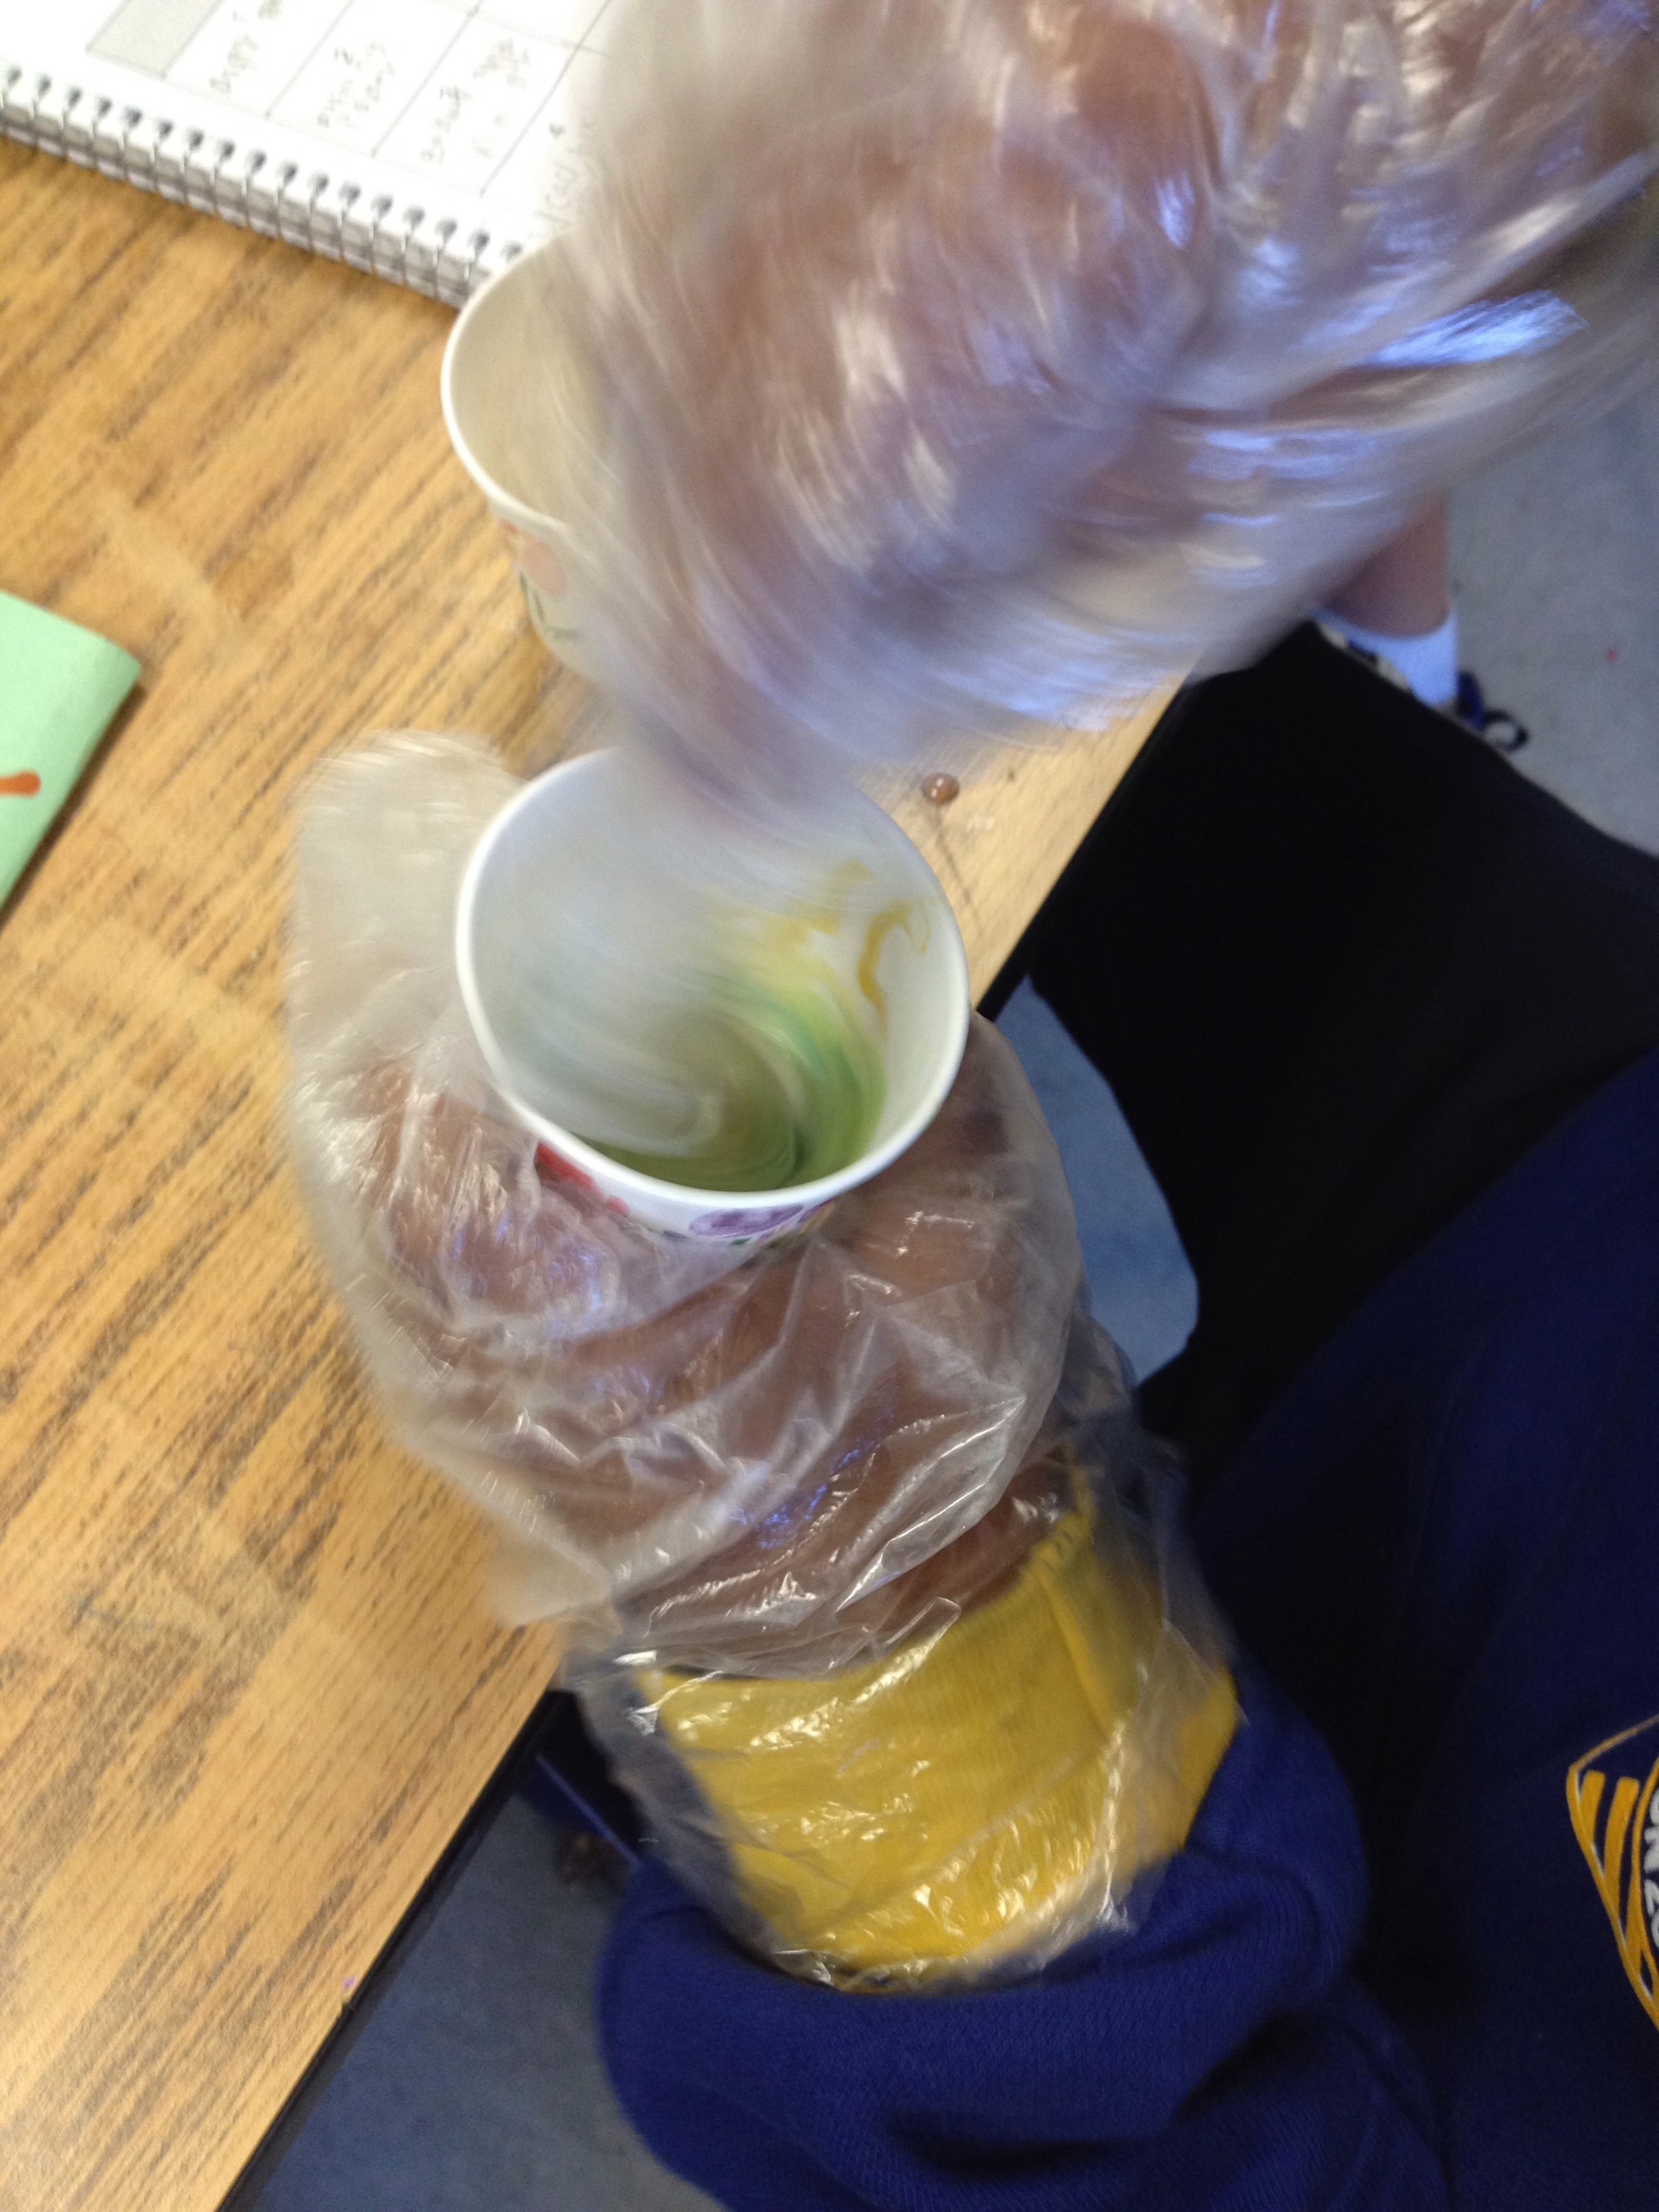 Chemical And Physical Changes 5th Grade Physical Science Lesson 4